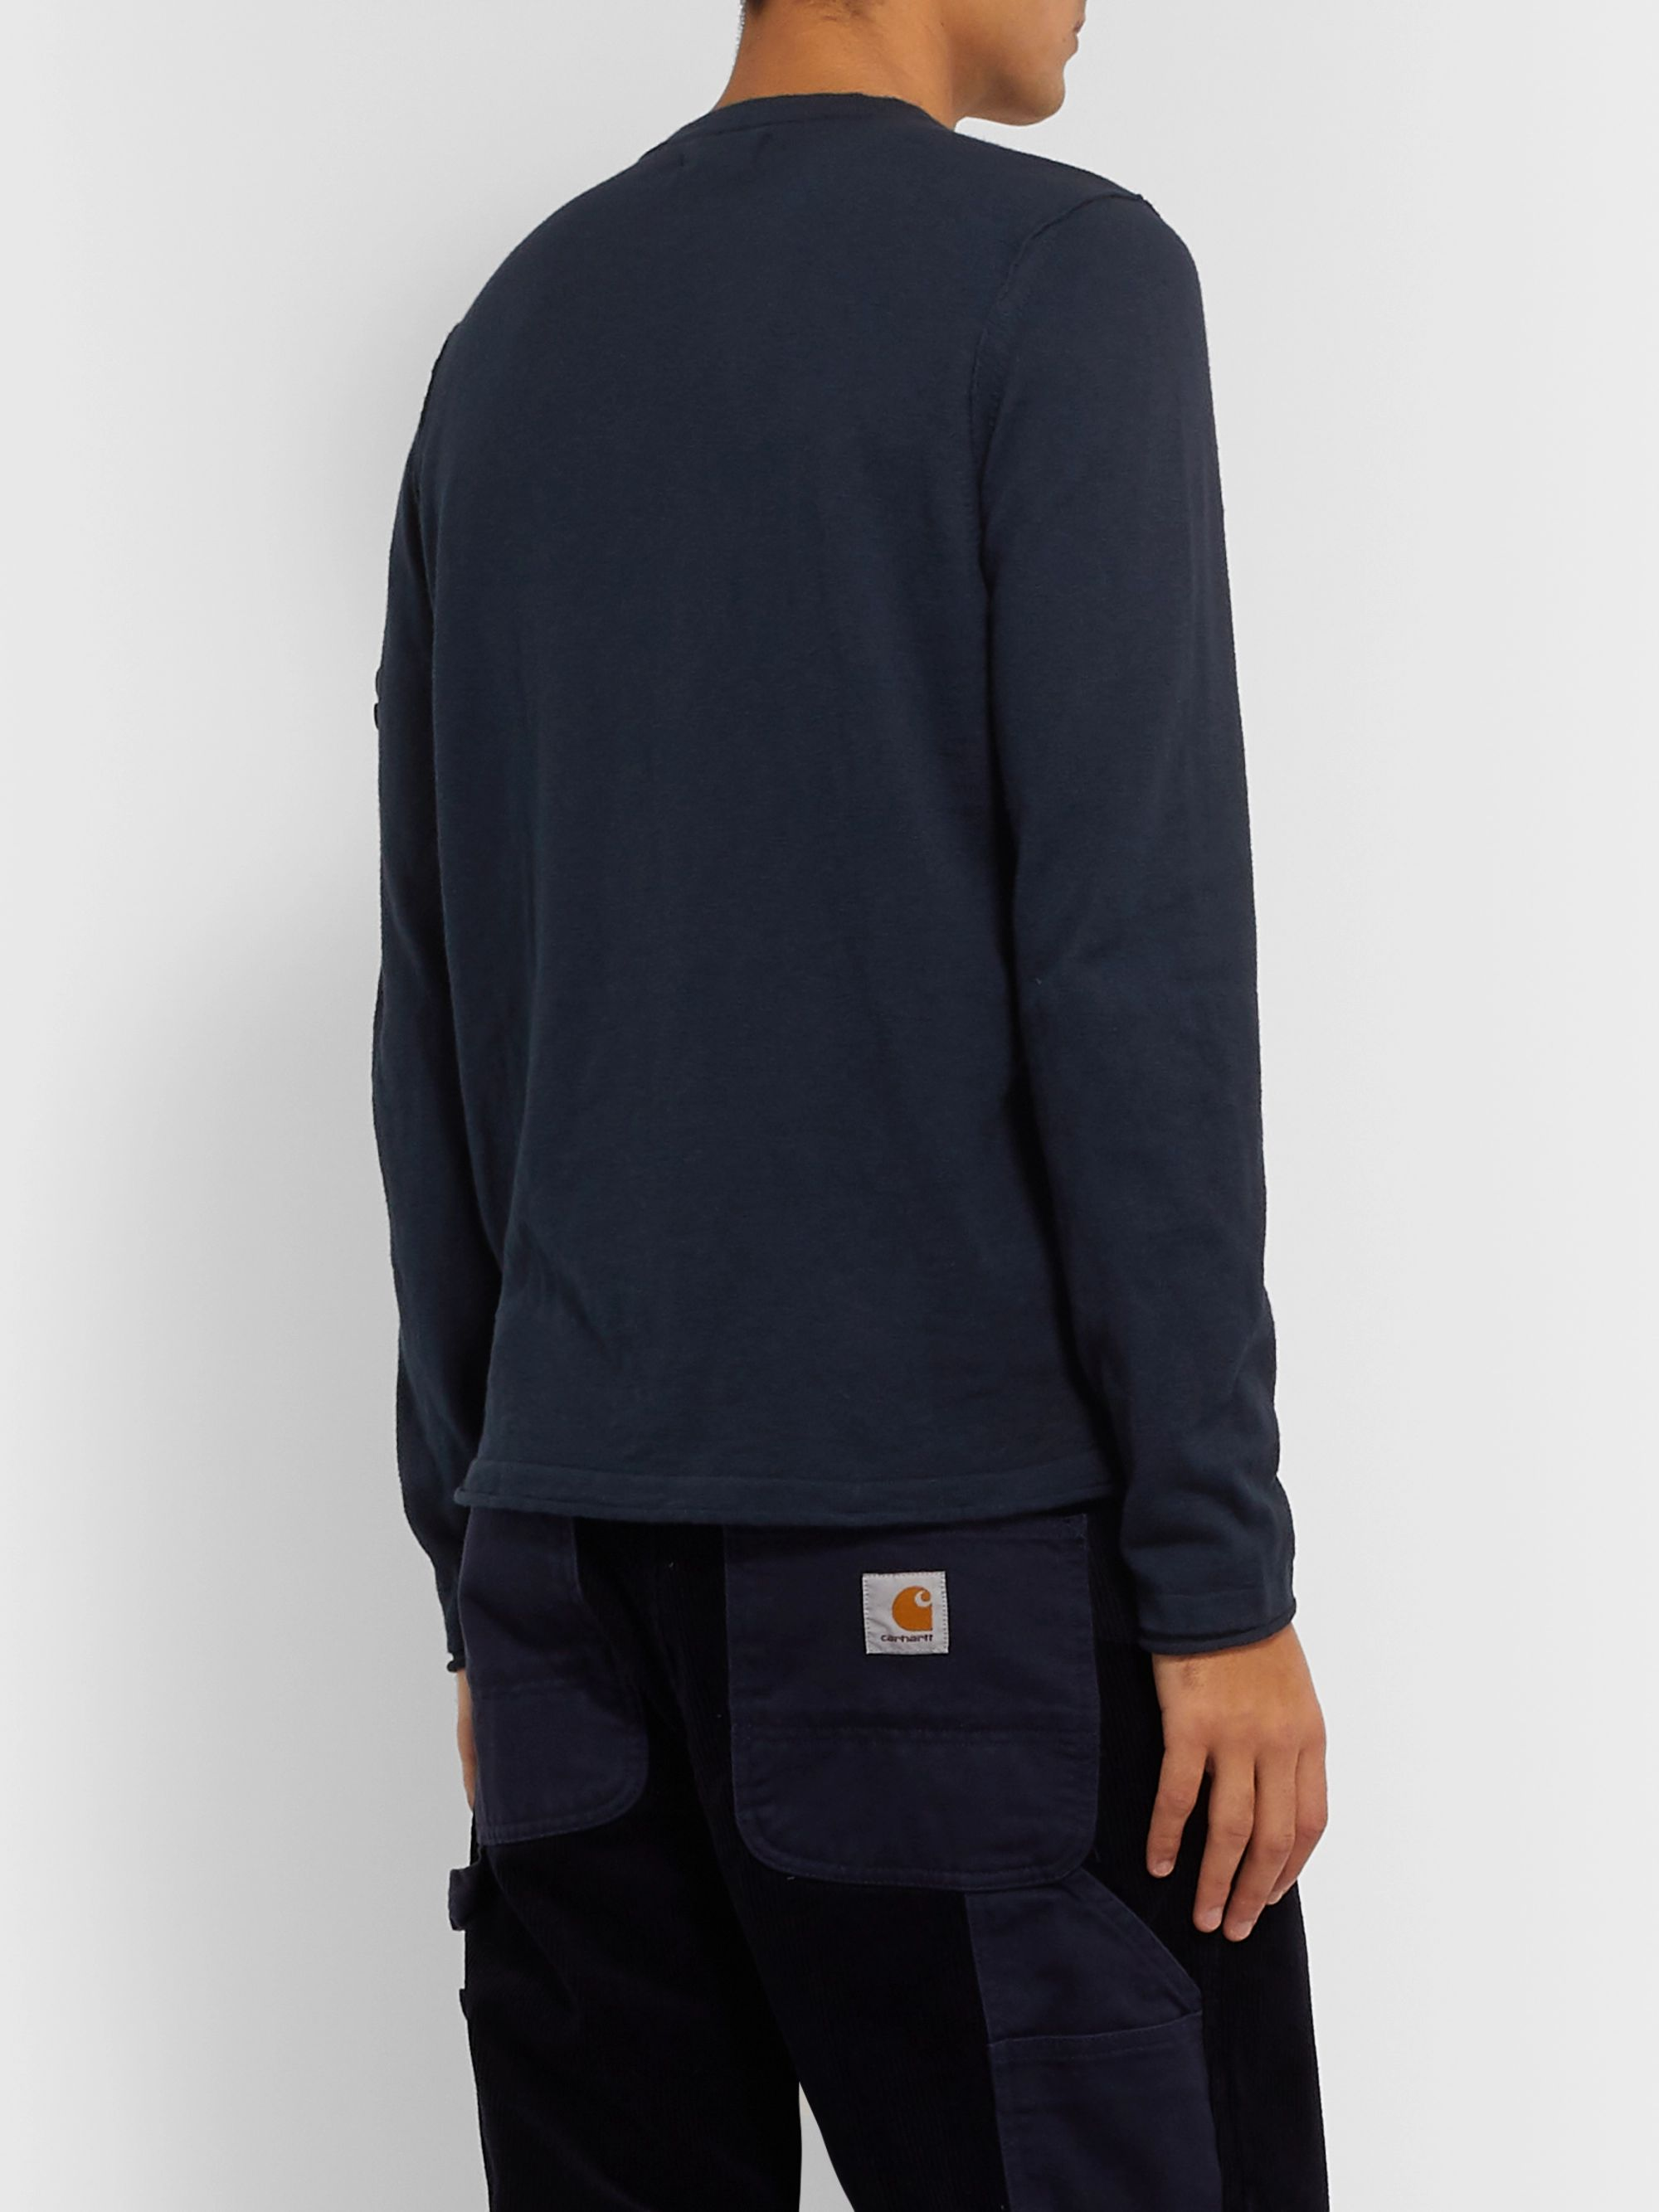 Stone Island Slim-Fit Logo-Appliquéd Garment-Dyed Cotton-Blend Sweater